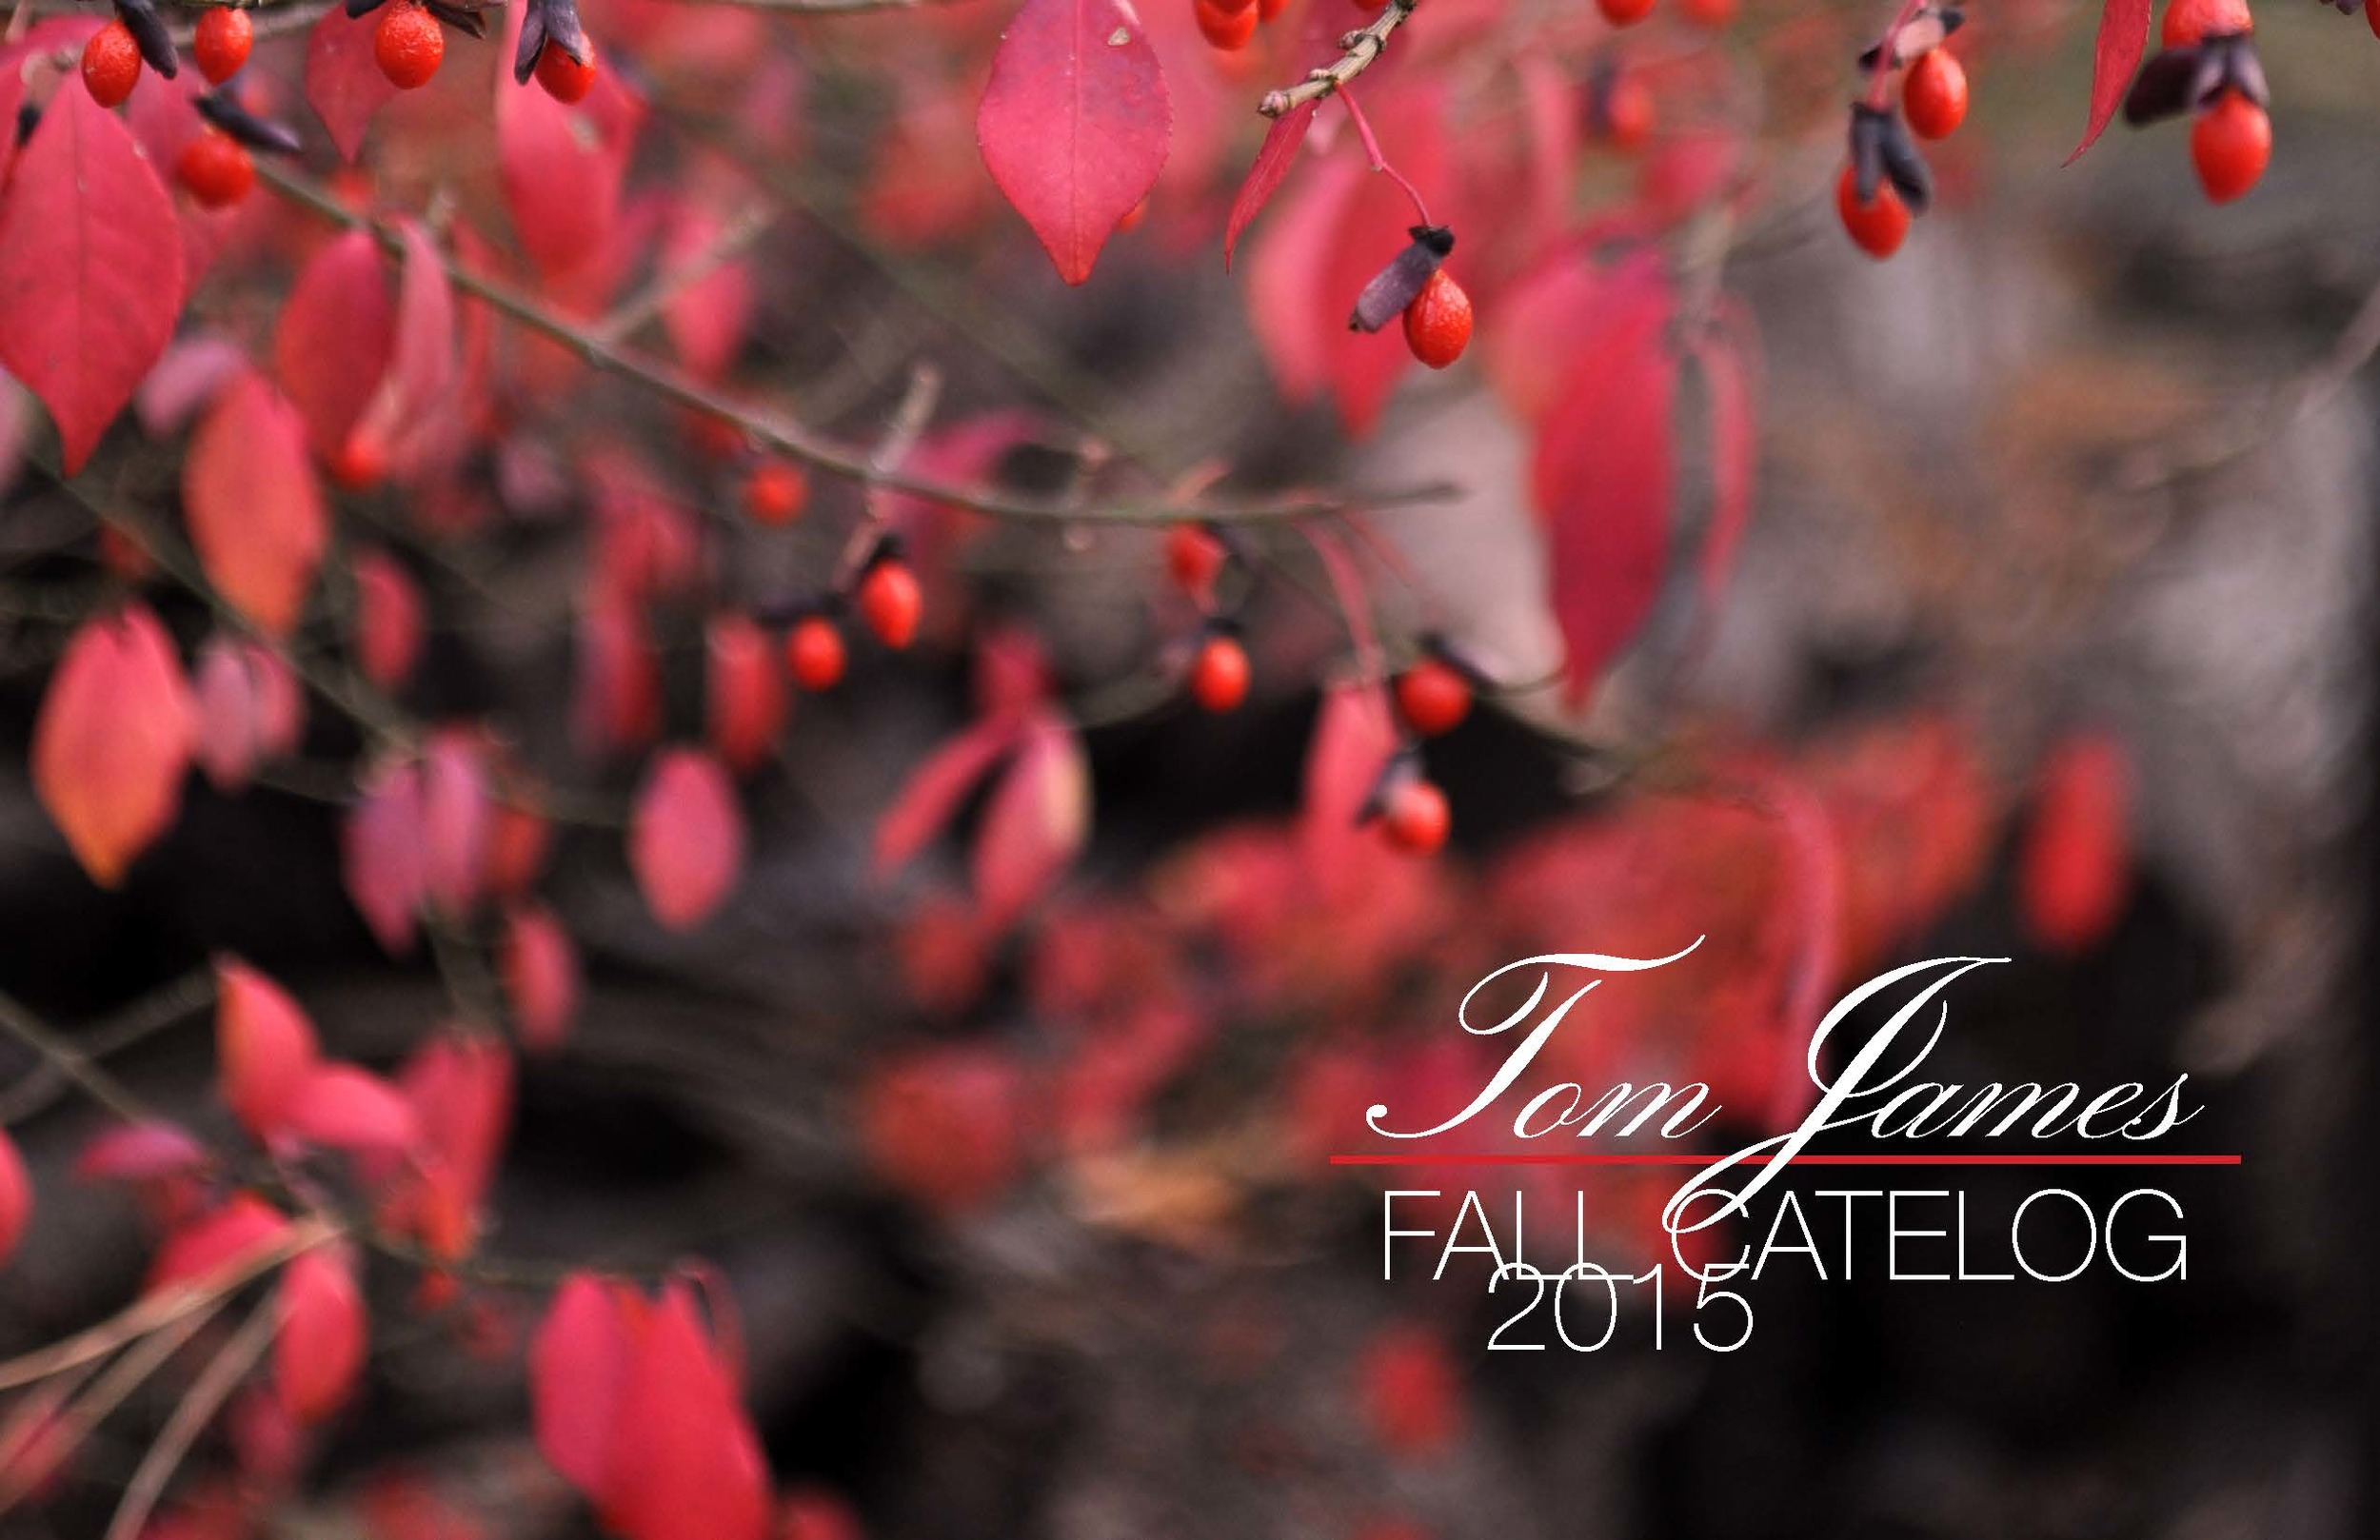 Tom James Fall Catalog 2015 pages_Page_13.jpg